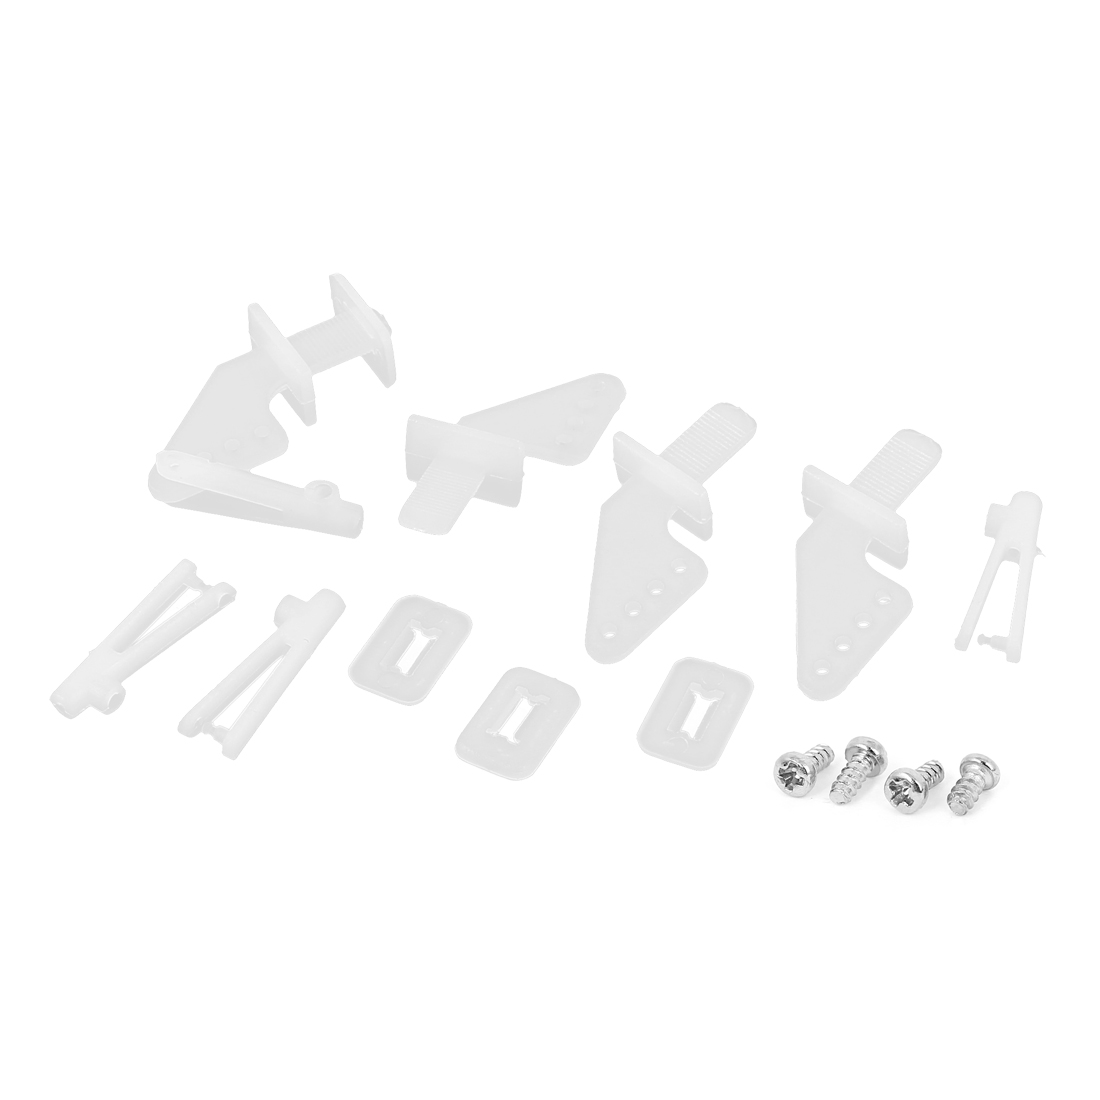 4 Set of White Nylon 4Holes Control Horns for RC Model Toy Plane Car Servo